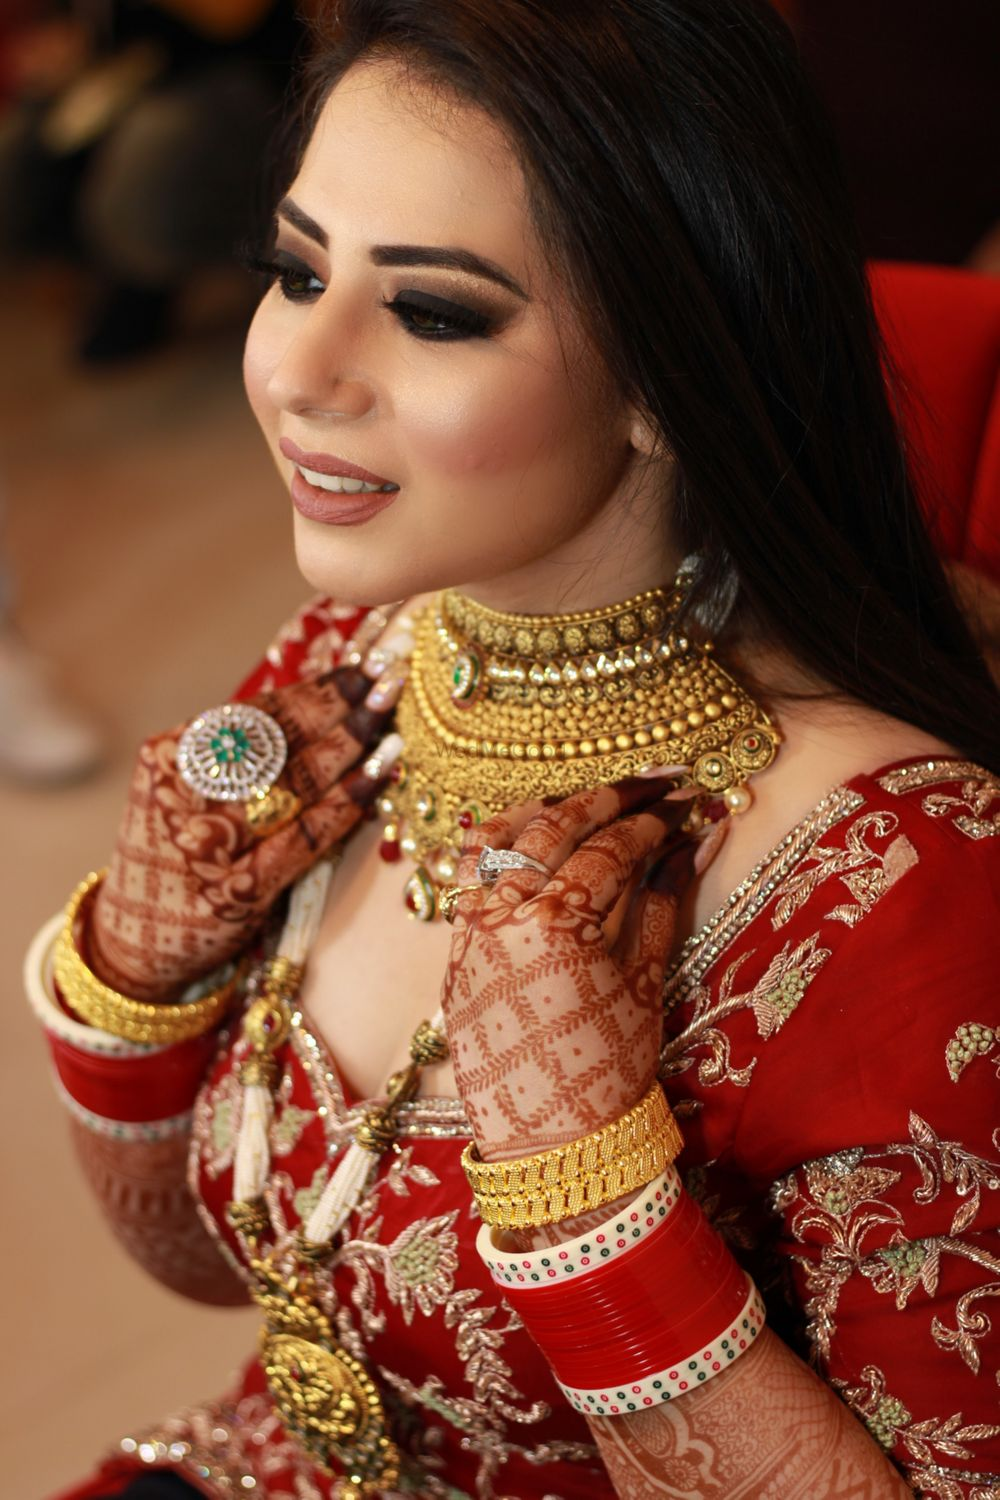 Photo From Bridal Kunchika - By Kamna Sharma